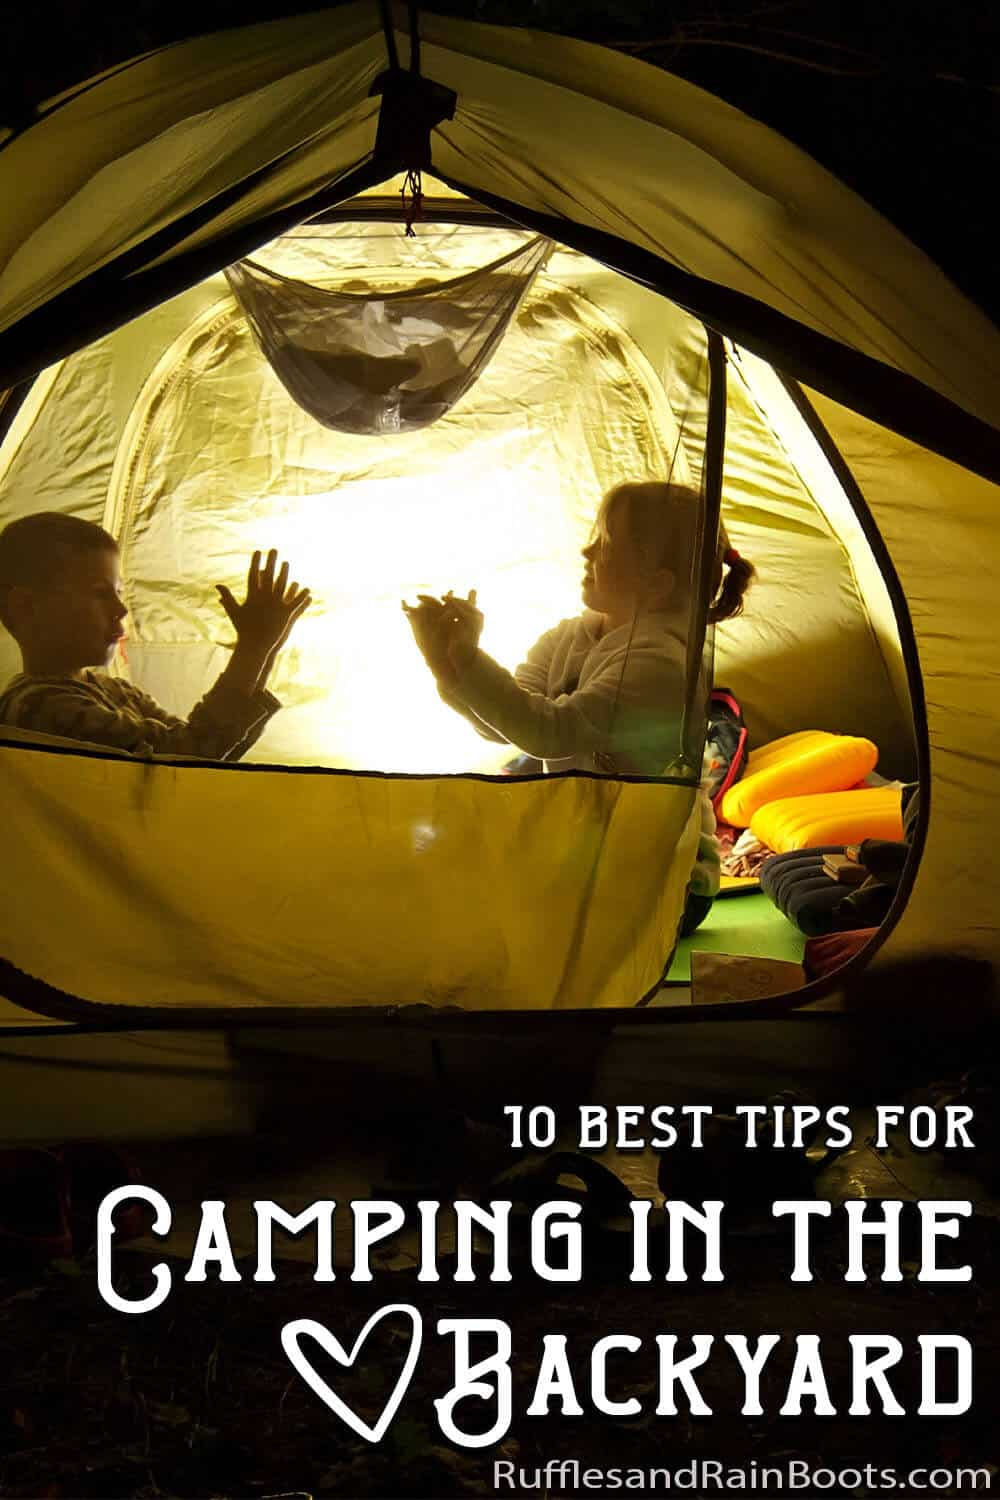 backyard campout tips and tricks with text which reads 10 best tips for camping in the backyard